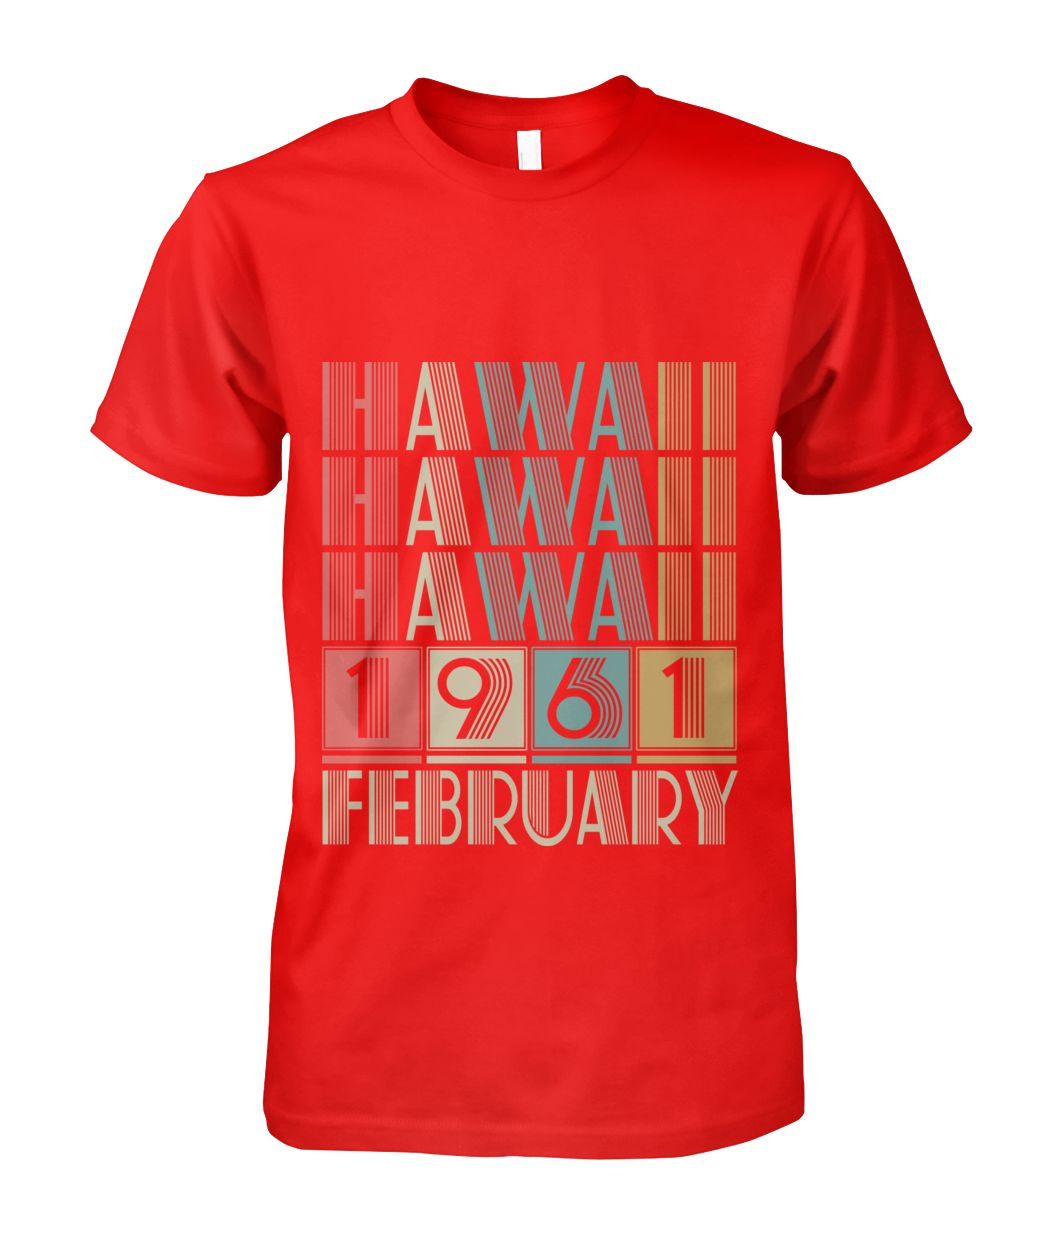 Born in Hawaii in February 1961 t shirt-Short Sleeves - TEEHOT.COM